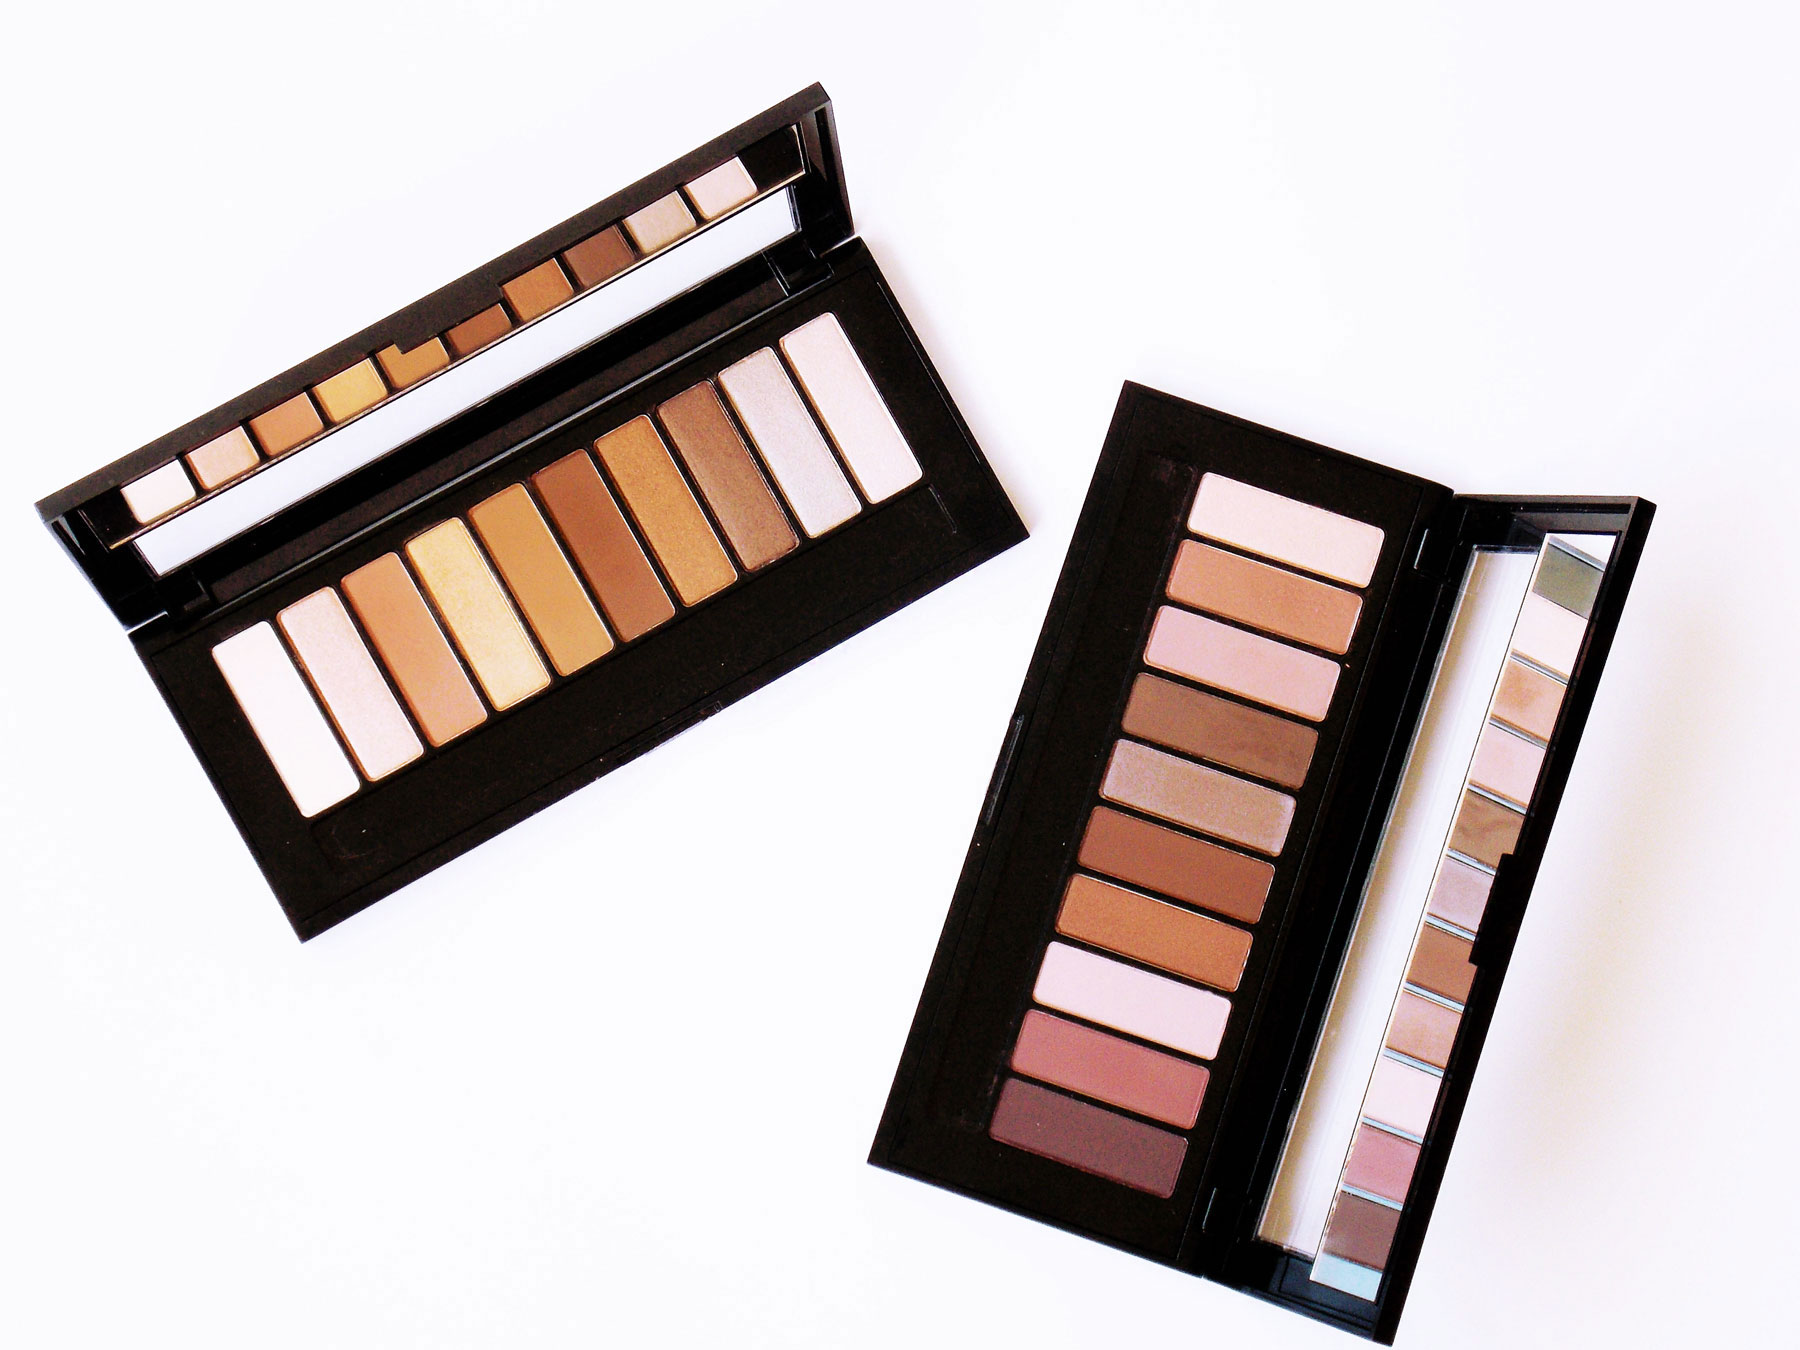 LOreal LA Palette Nude 1 and Nude 2 Review and Swatches